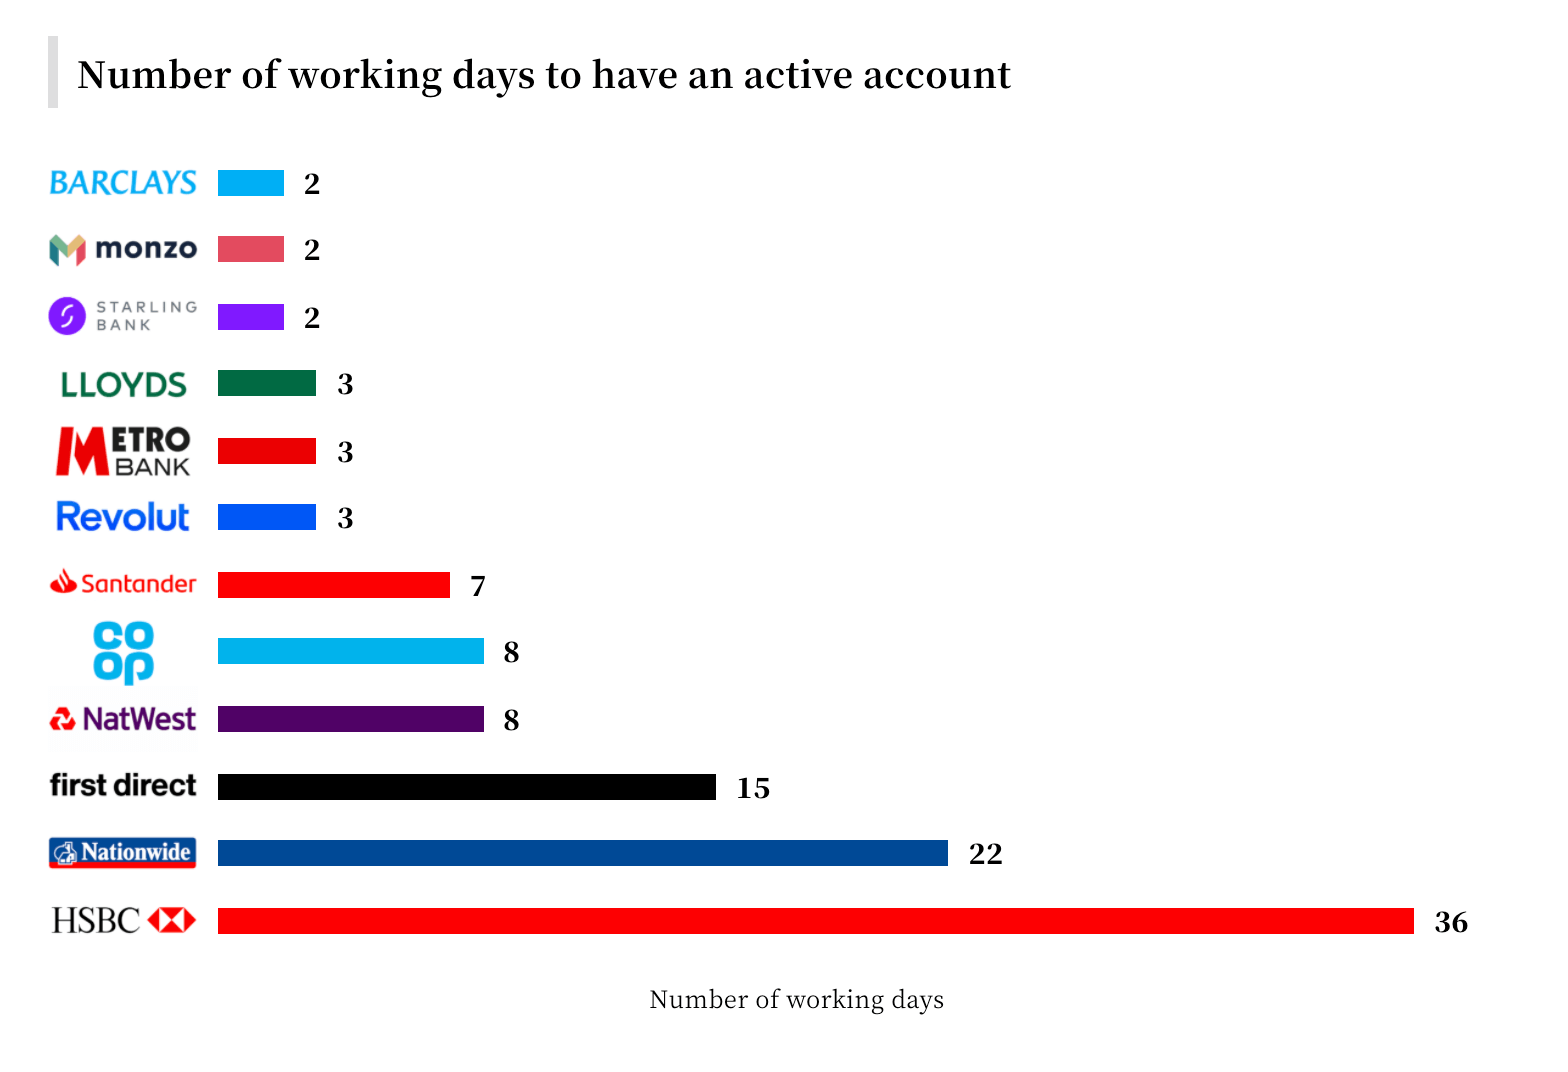 Number of working days to have an active account